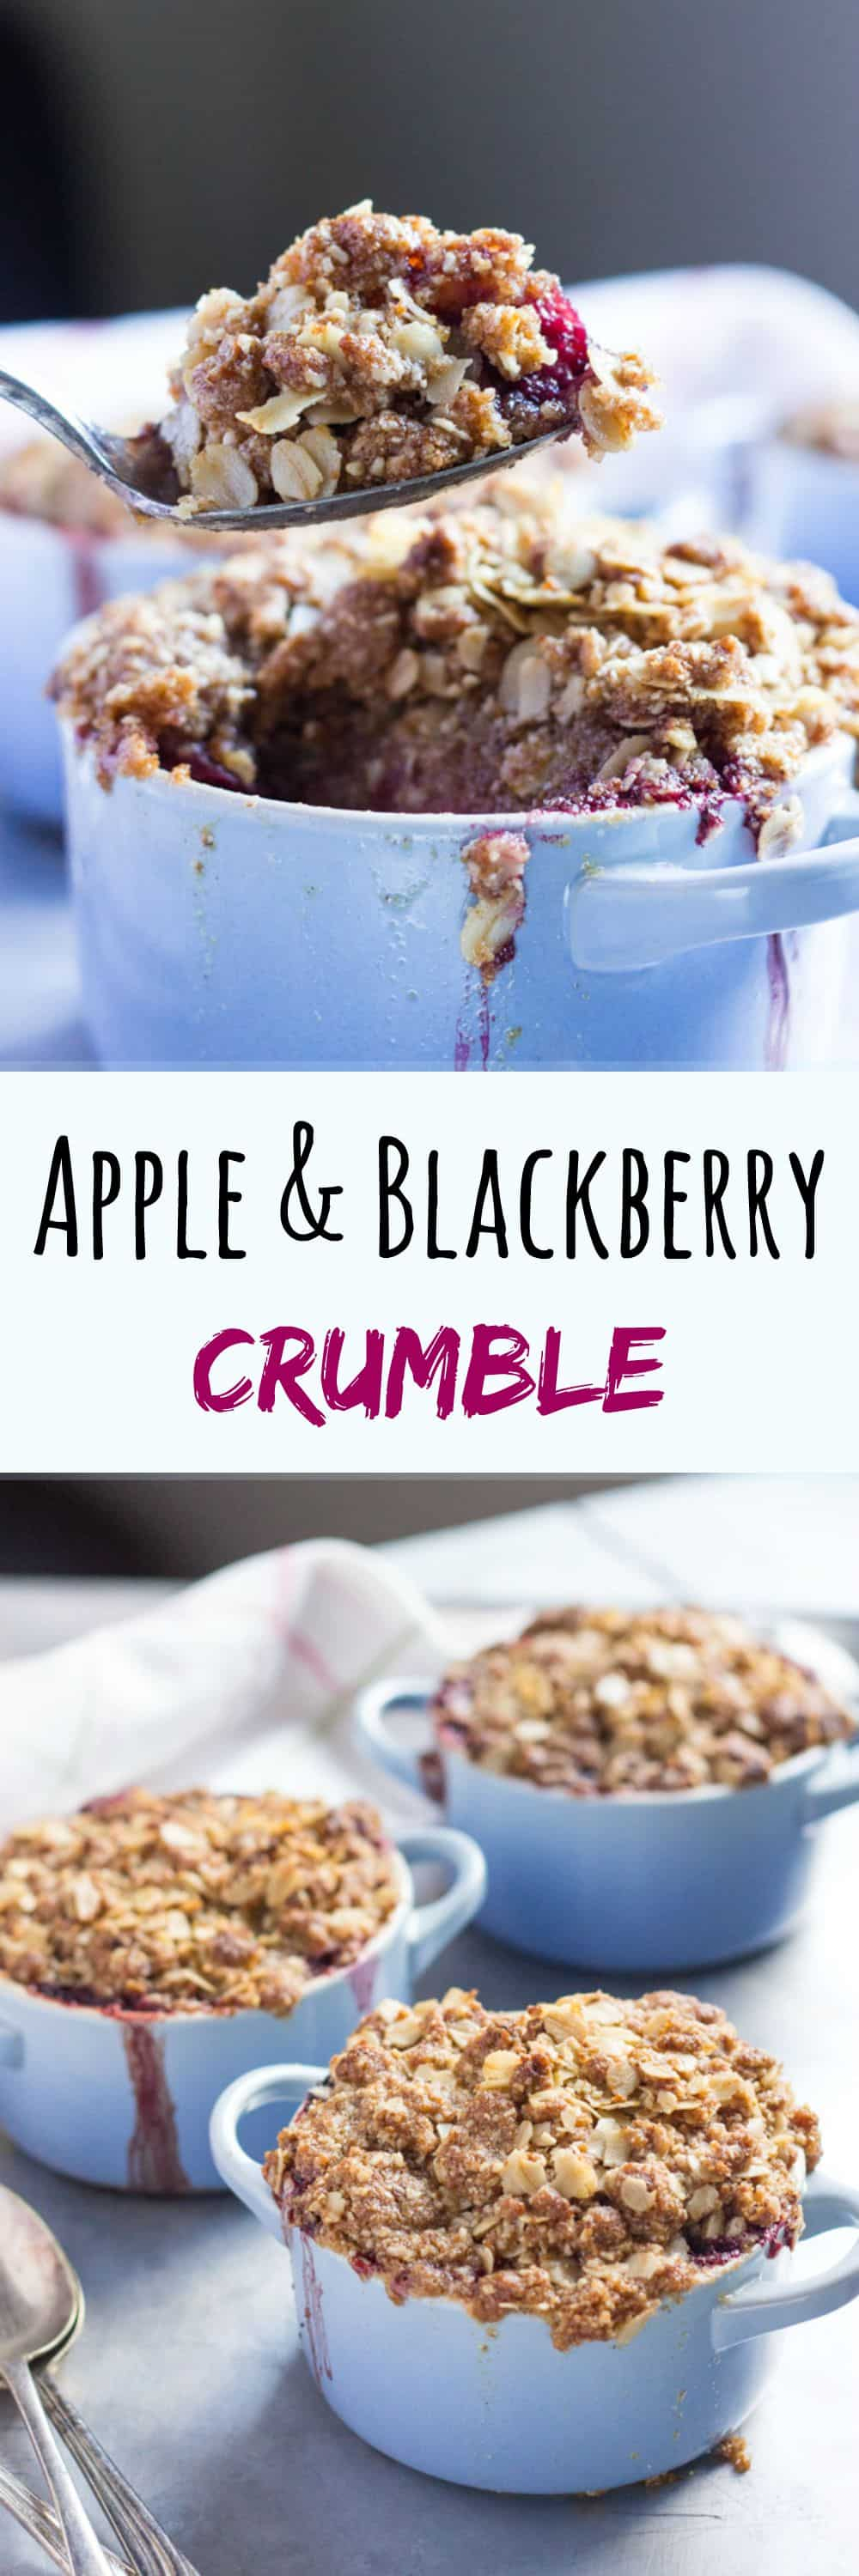 Apple and Blackberry Crumble. Prepared in advance and bake just in time for dessert.